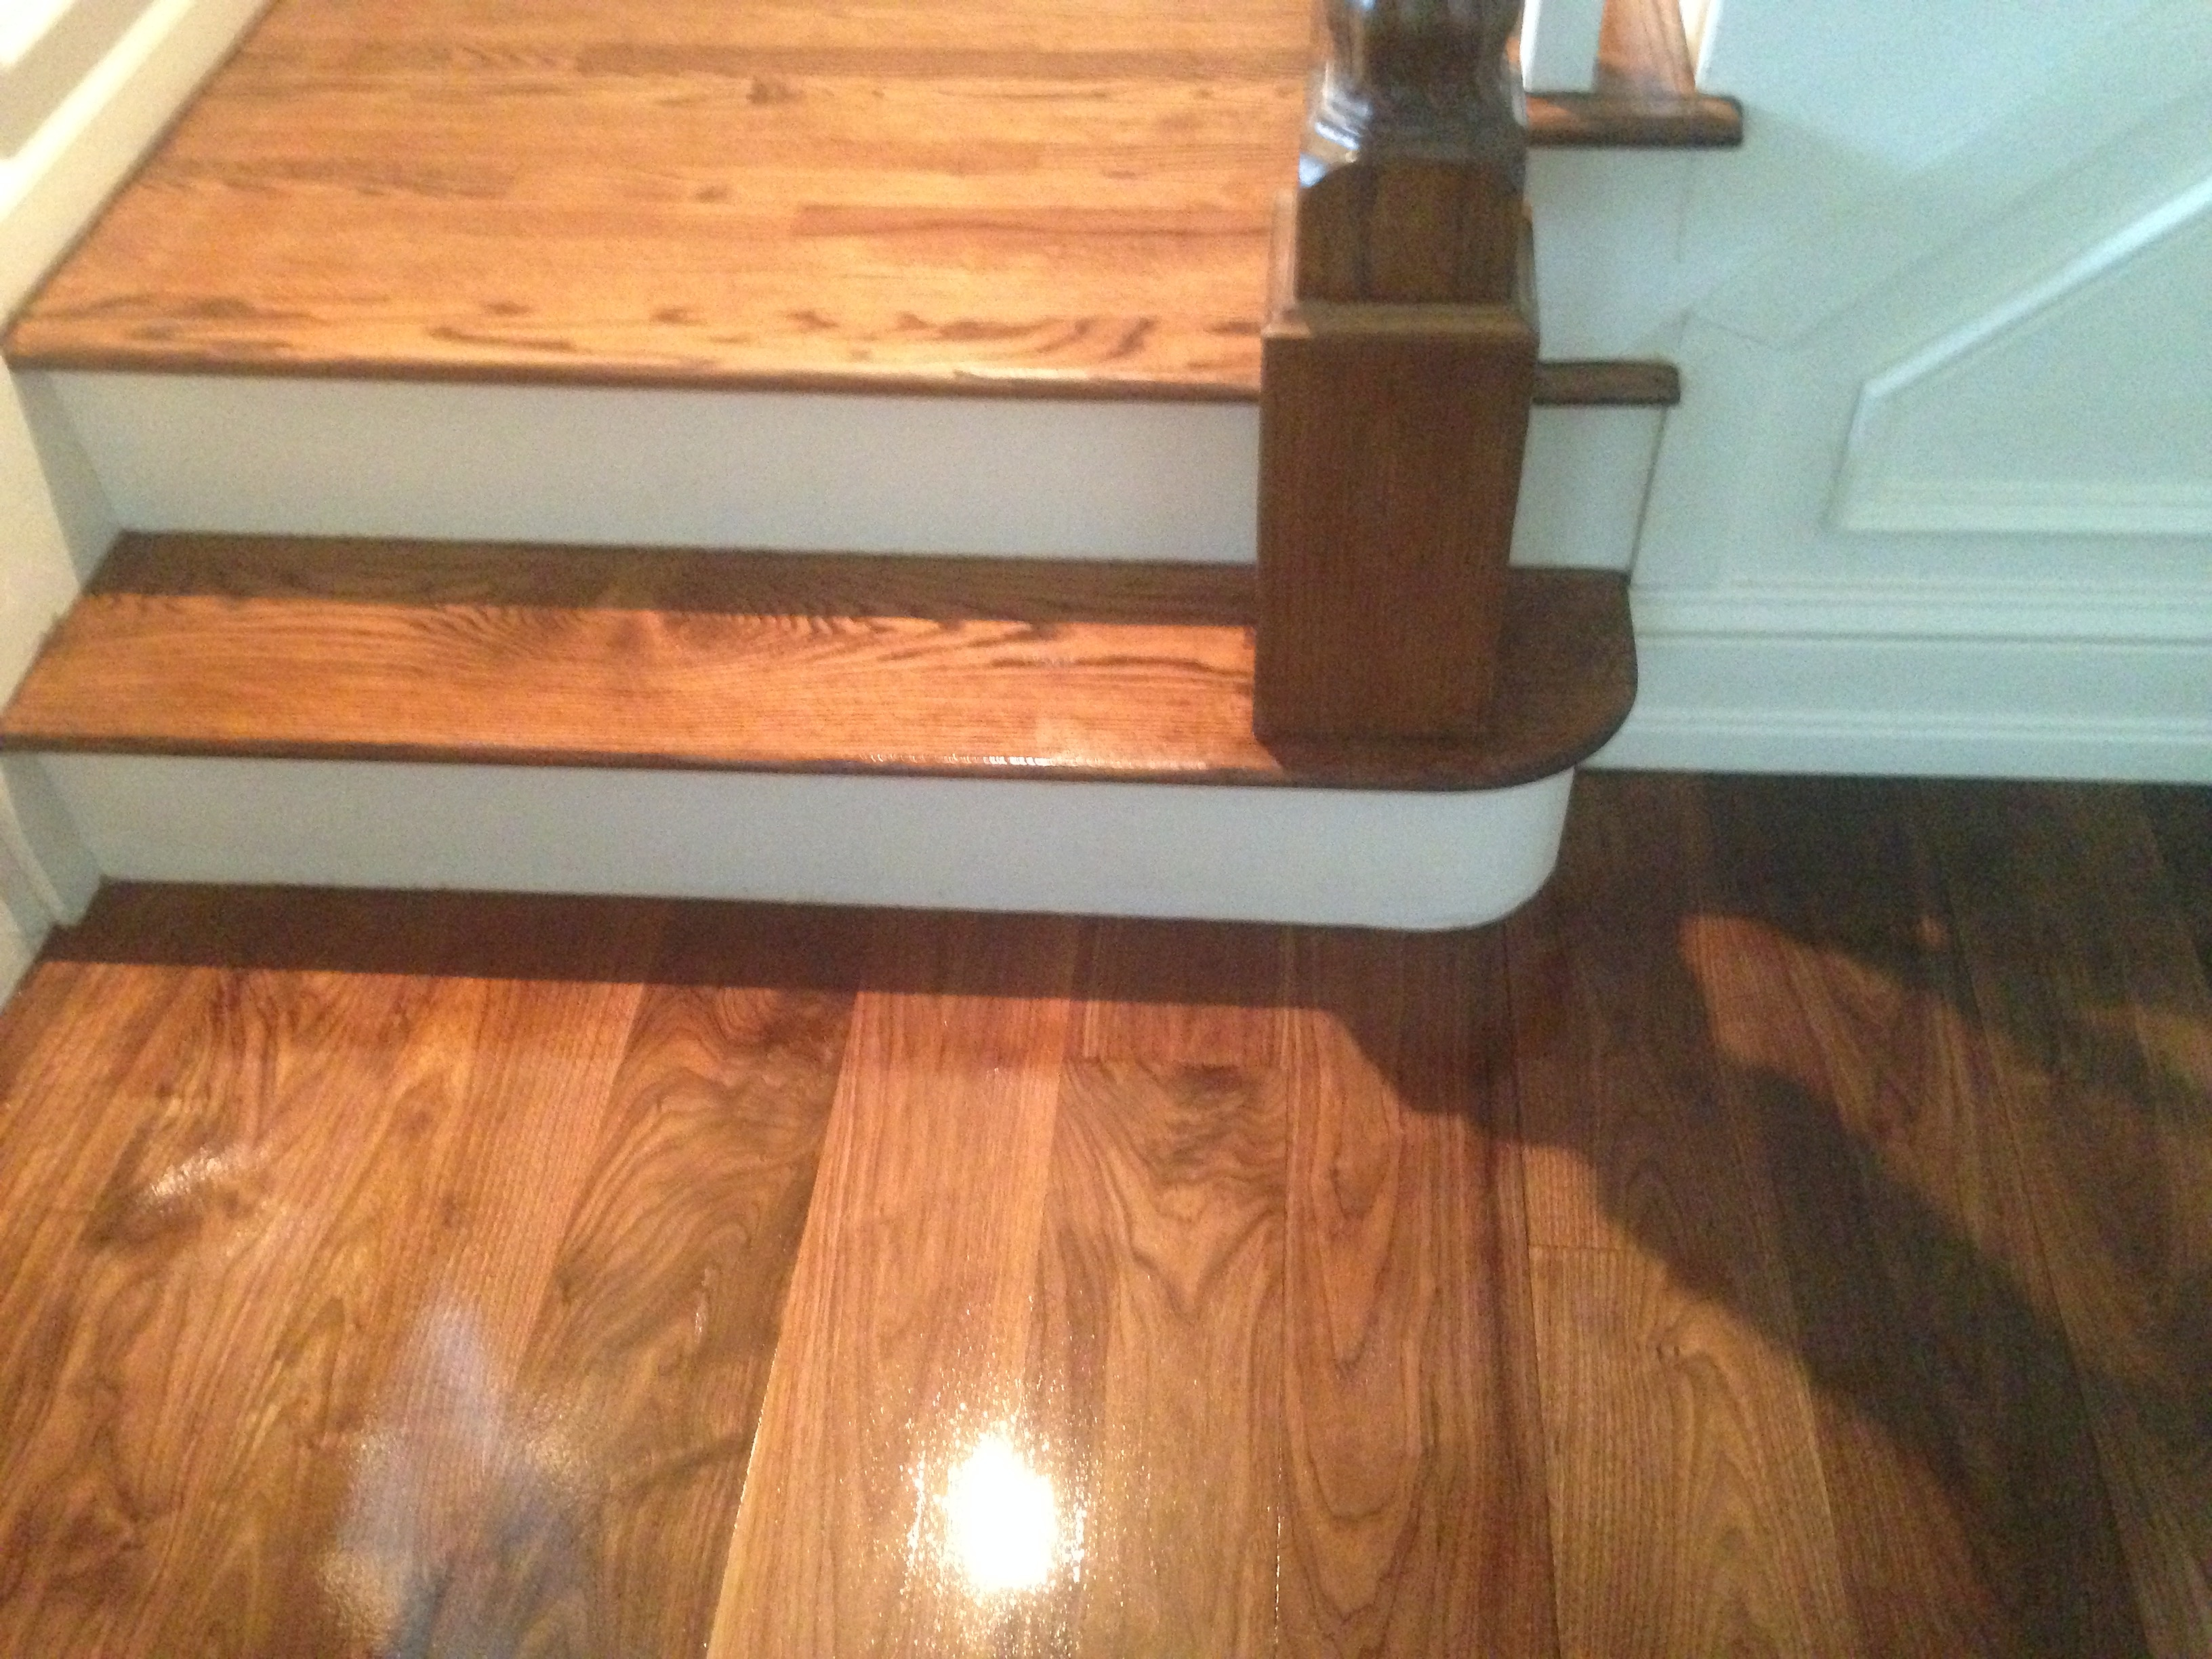 new hardwood duffyfloors unfinished color floors of patching unfinshed the old and matching